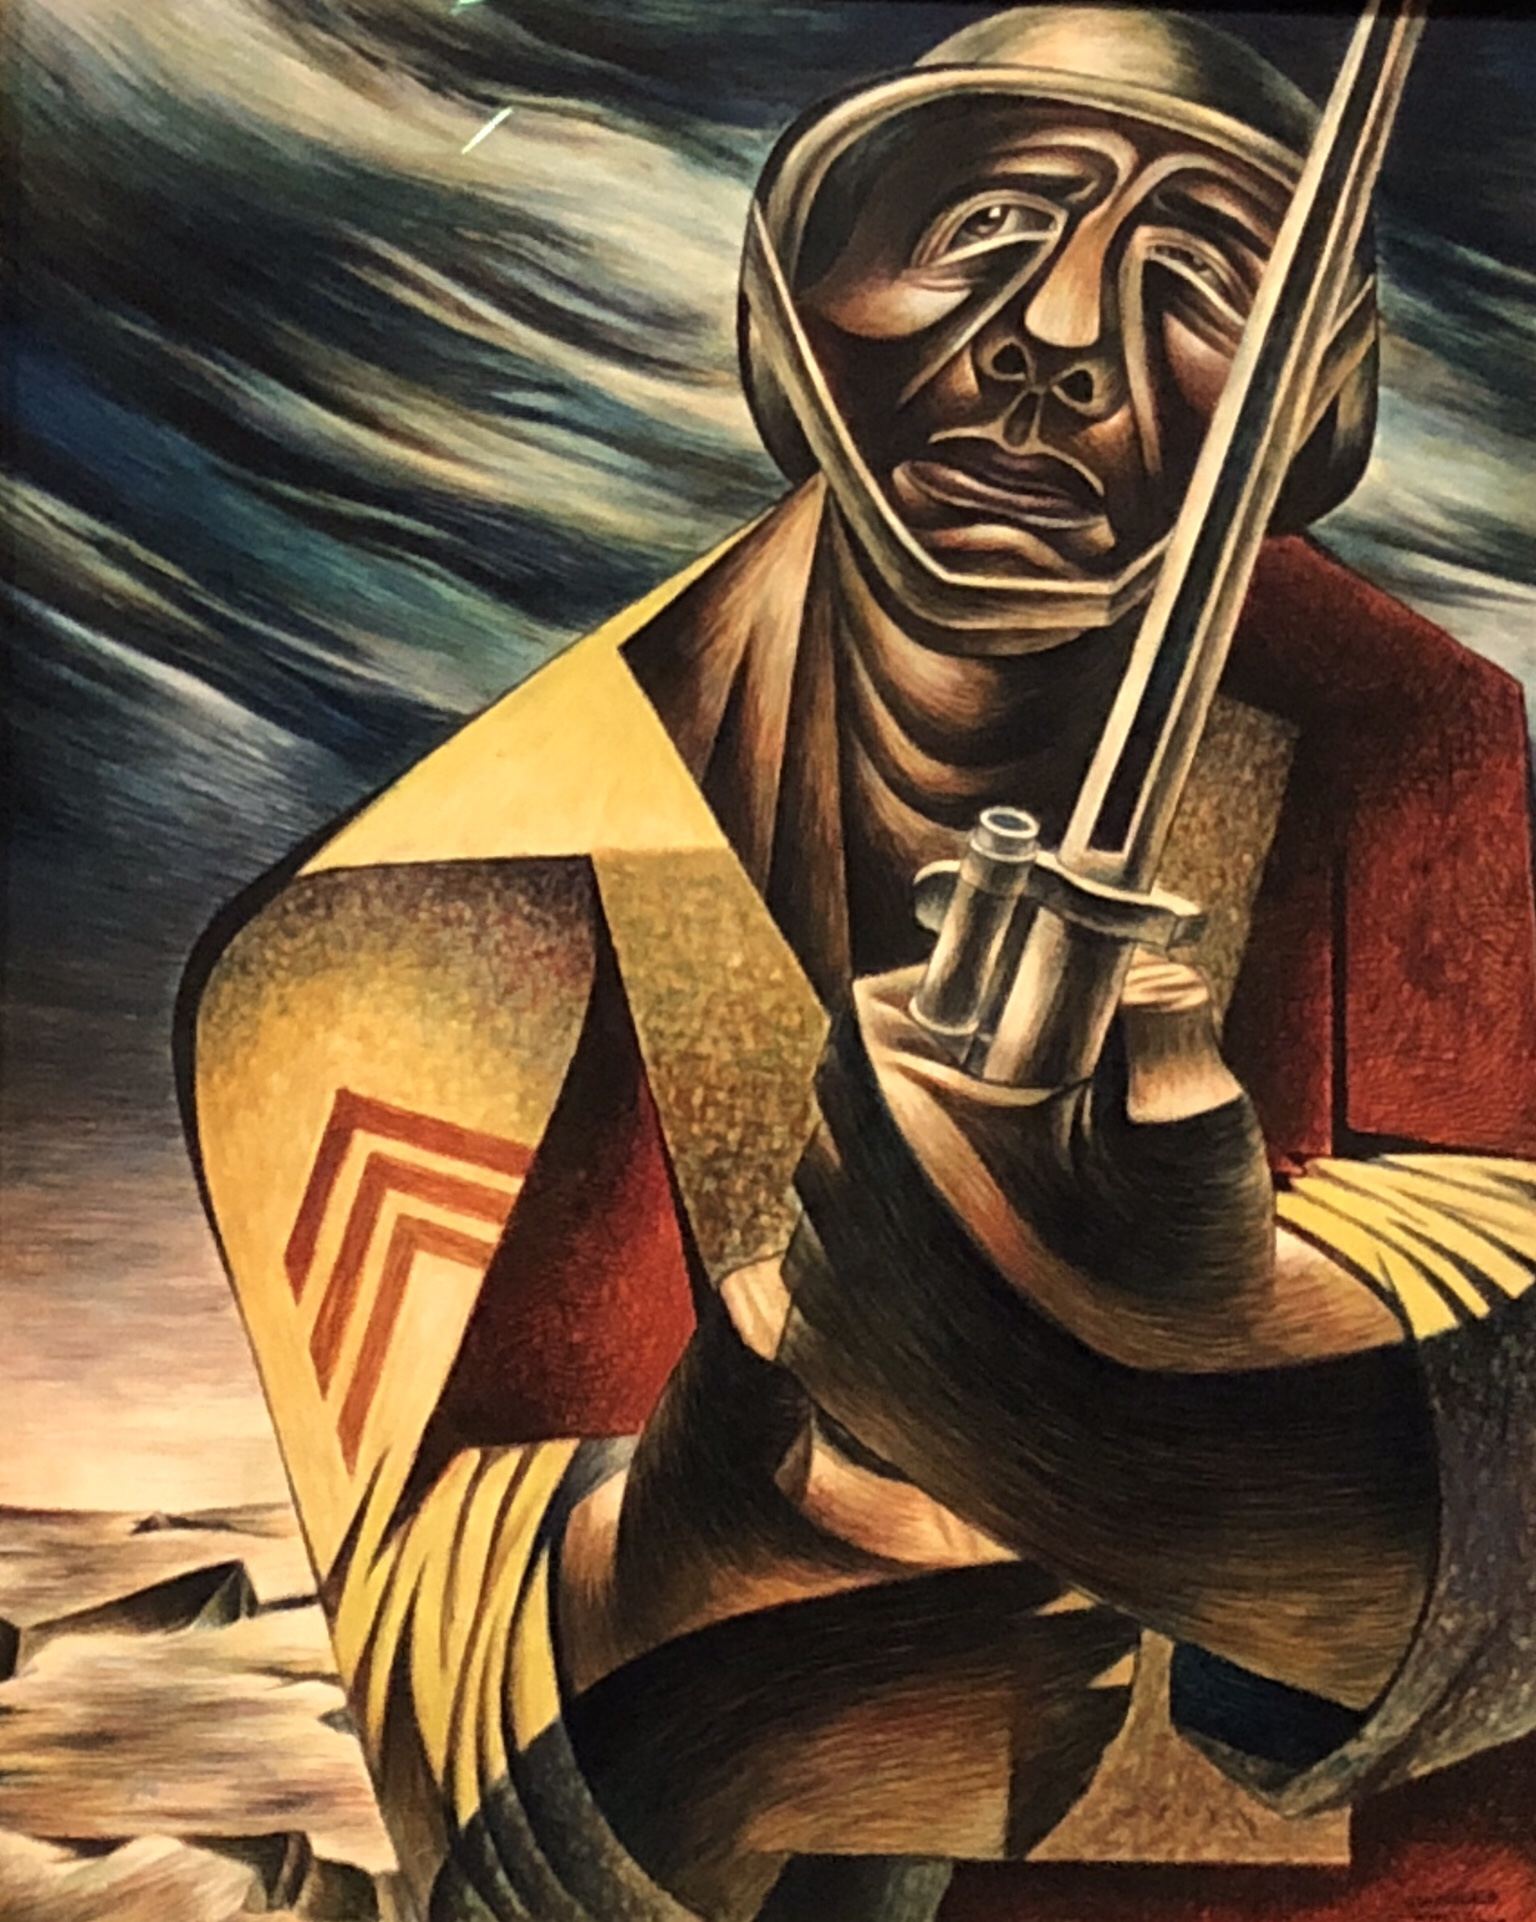 The Soldier by Charles White